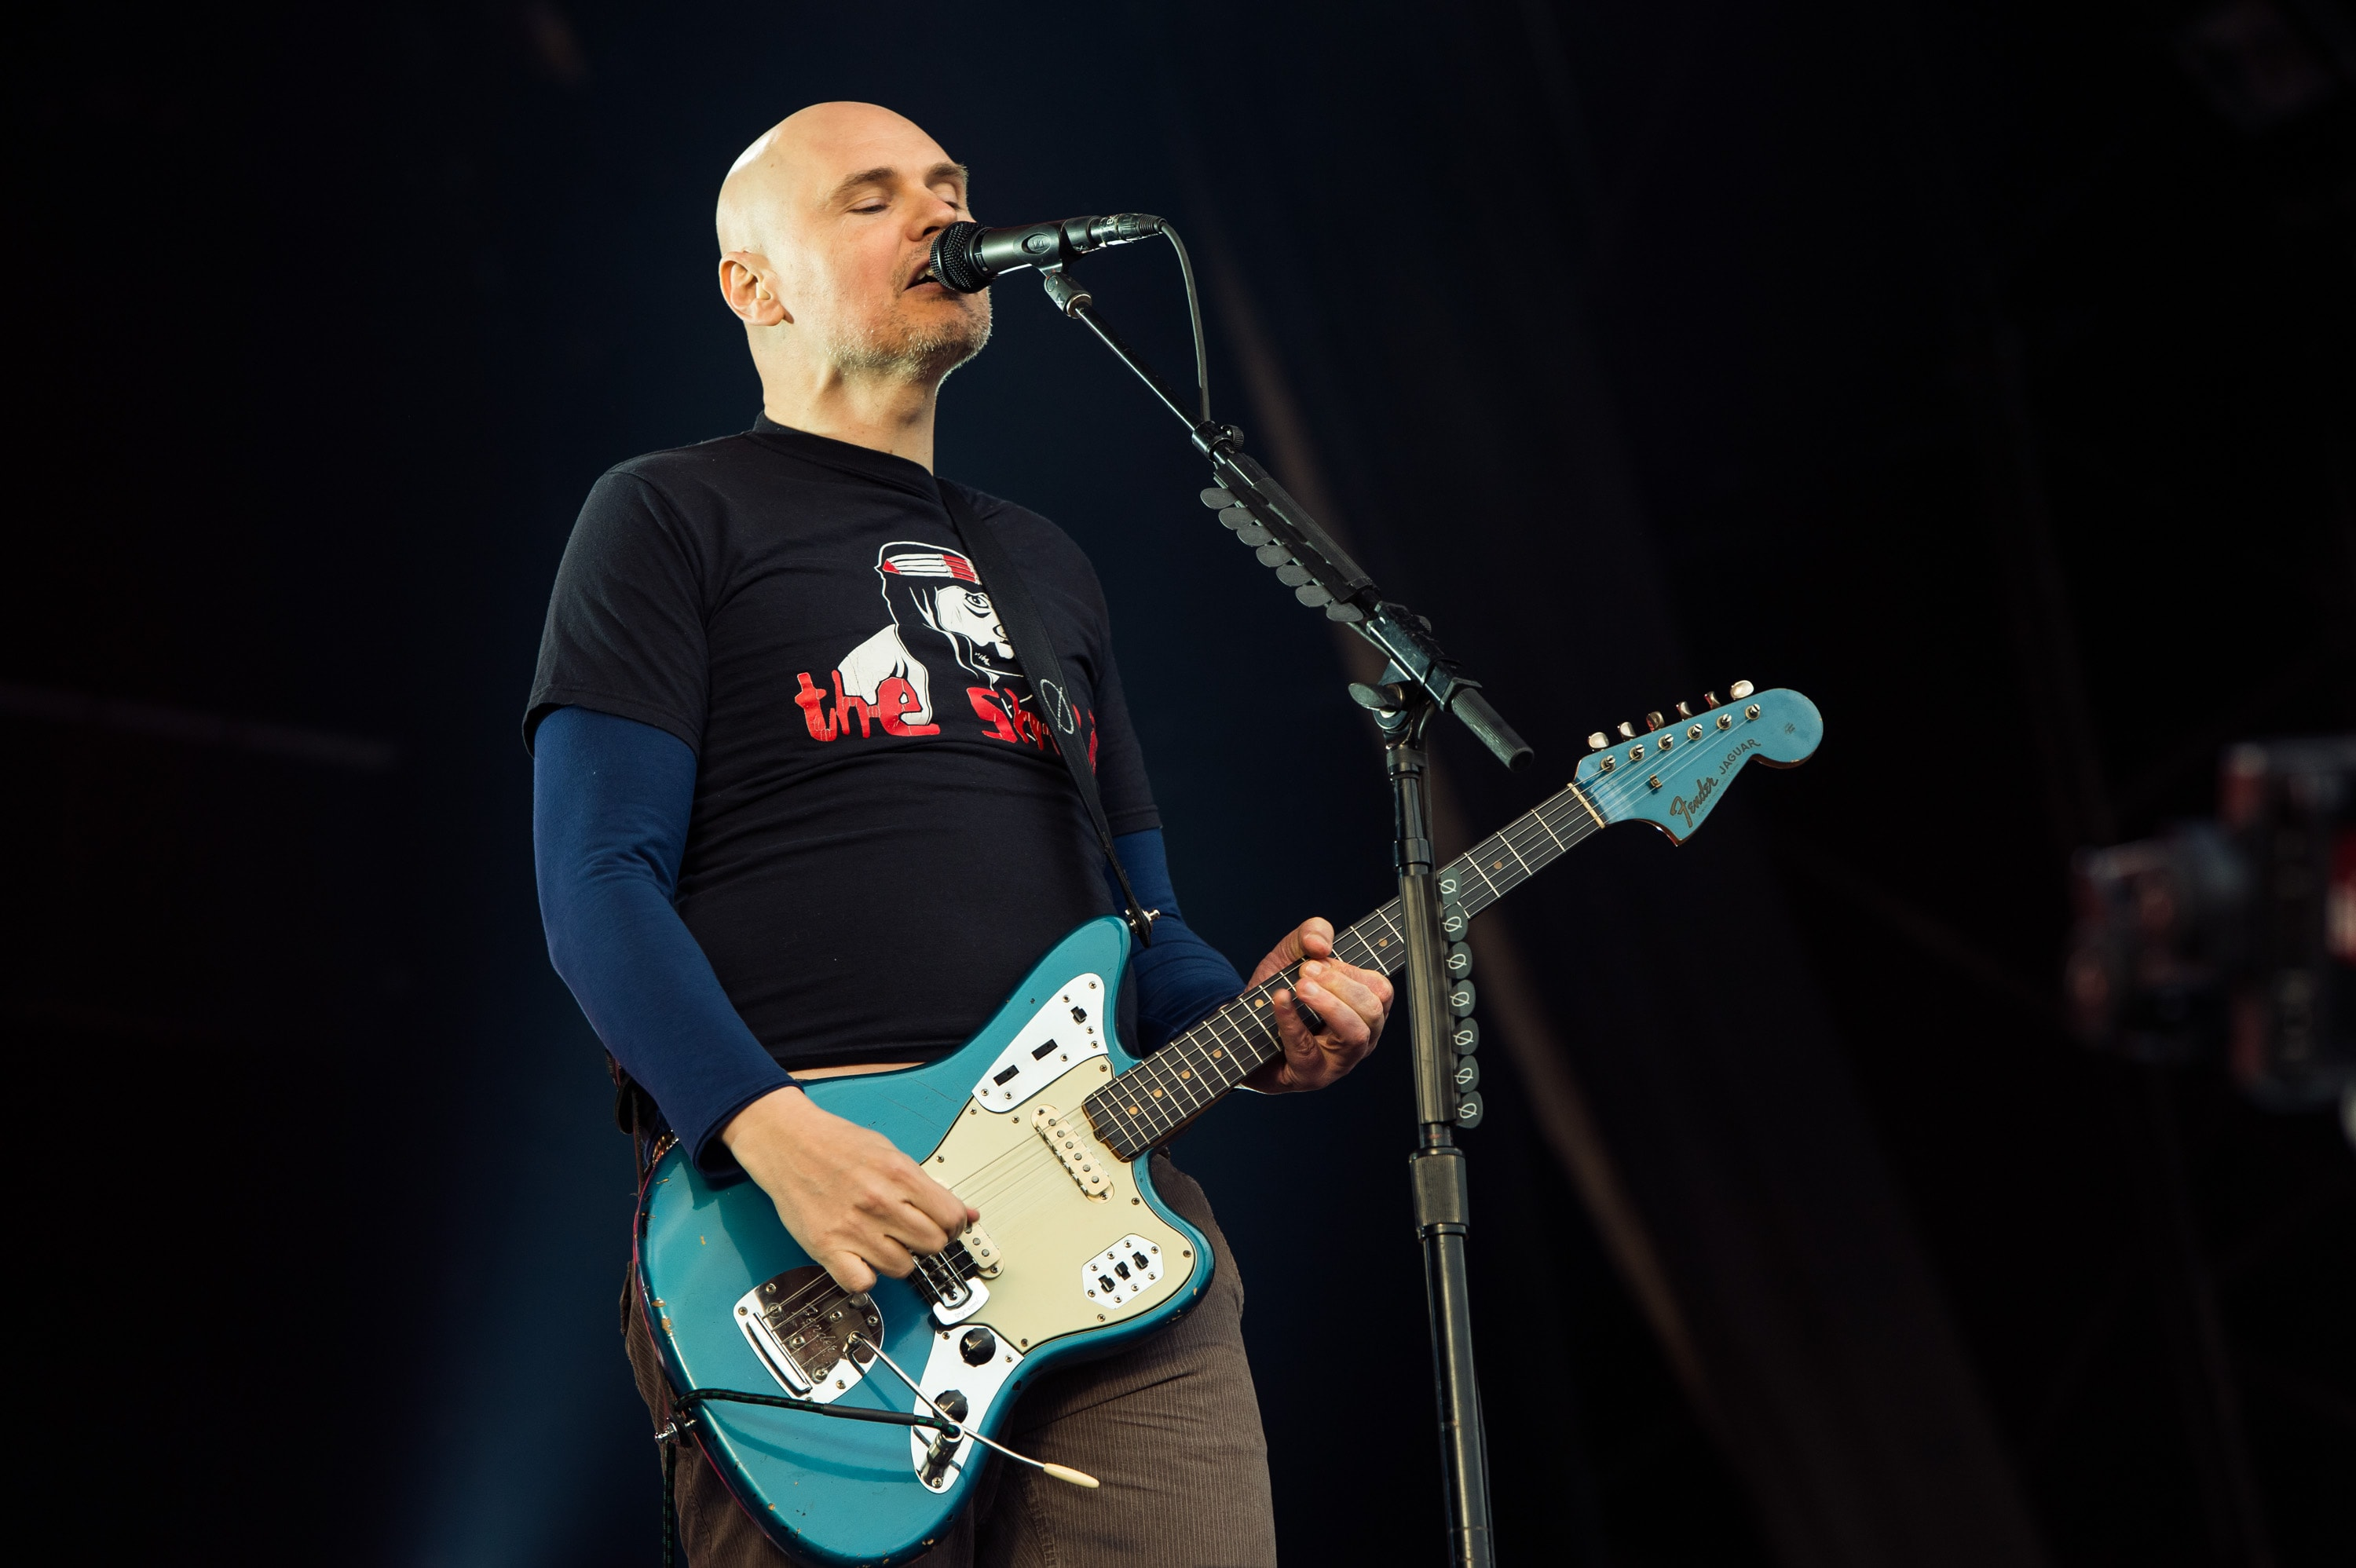 GLASTONBURY, ENGLAND - JUNE 30: Billy Corgan of the Smashing Pumpkins performs on the Other Stage during day 4 of the 2013 Glastonbury Festival at Worthy Farm on June 29, 2013 in Glastonbury, England.